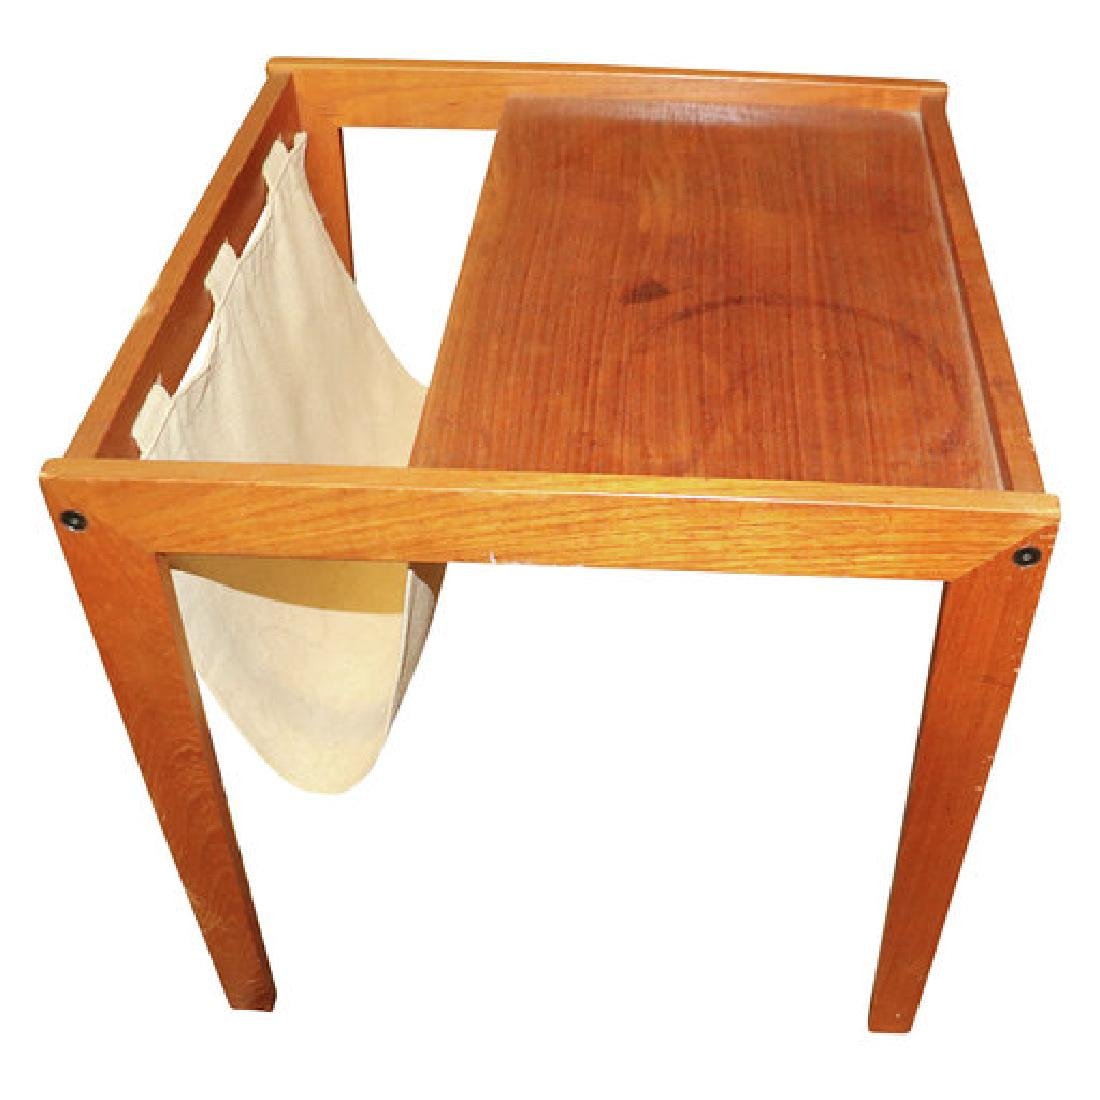 MCM CANVAS MAGAZINE TABLE RACK BY BENT SILBERGS